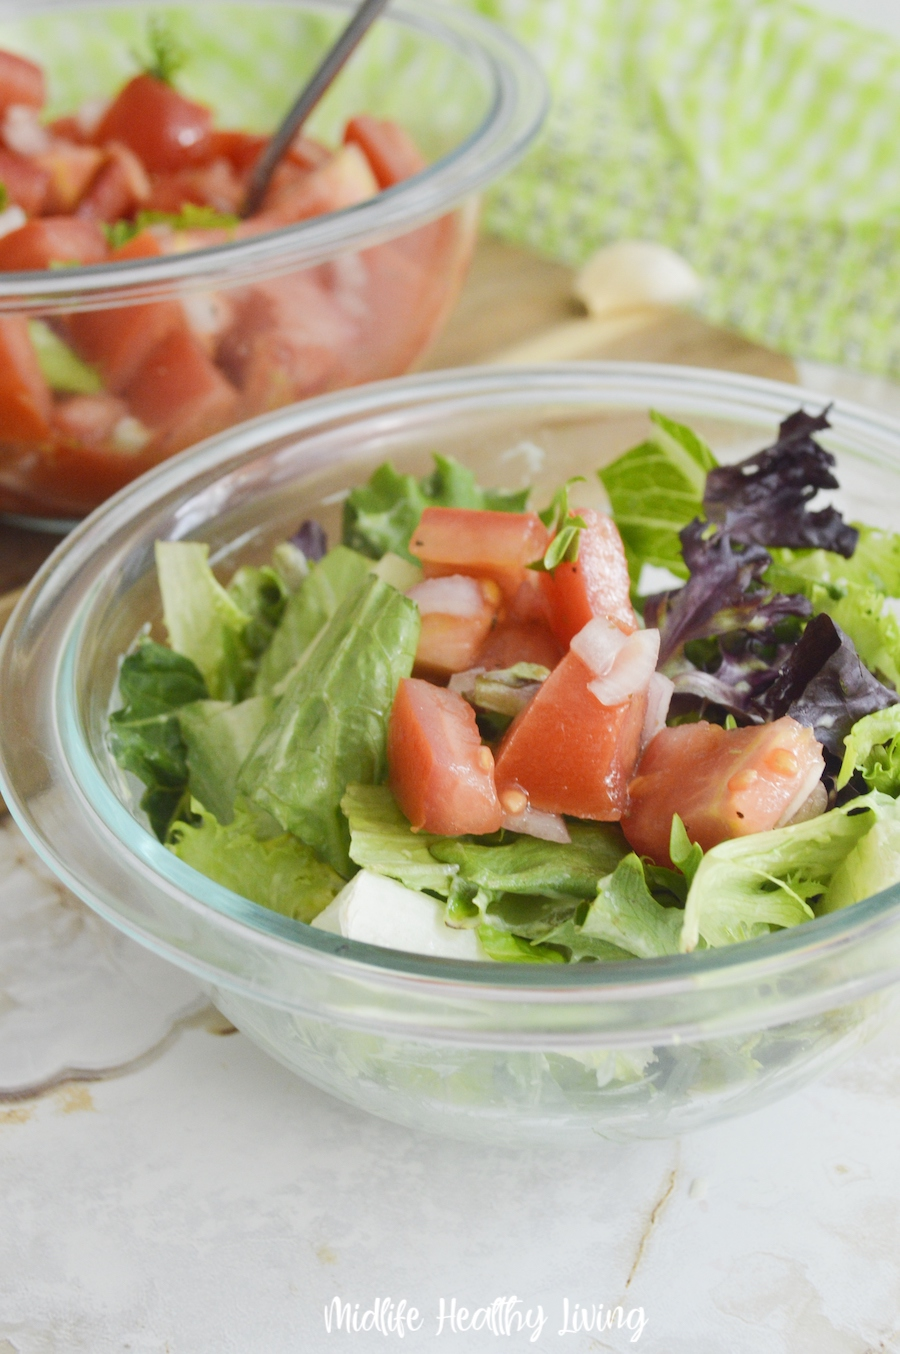 Tomato salad served over lettuce for a delicious lunch.